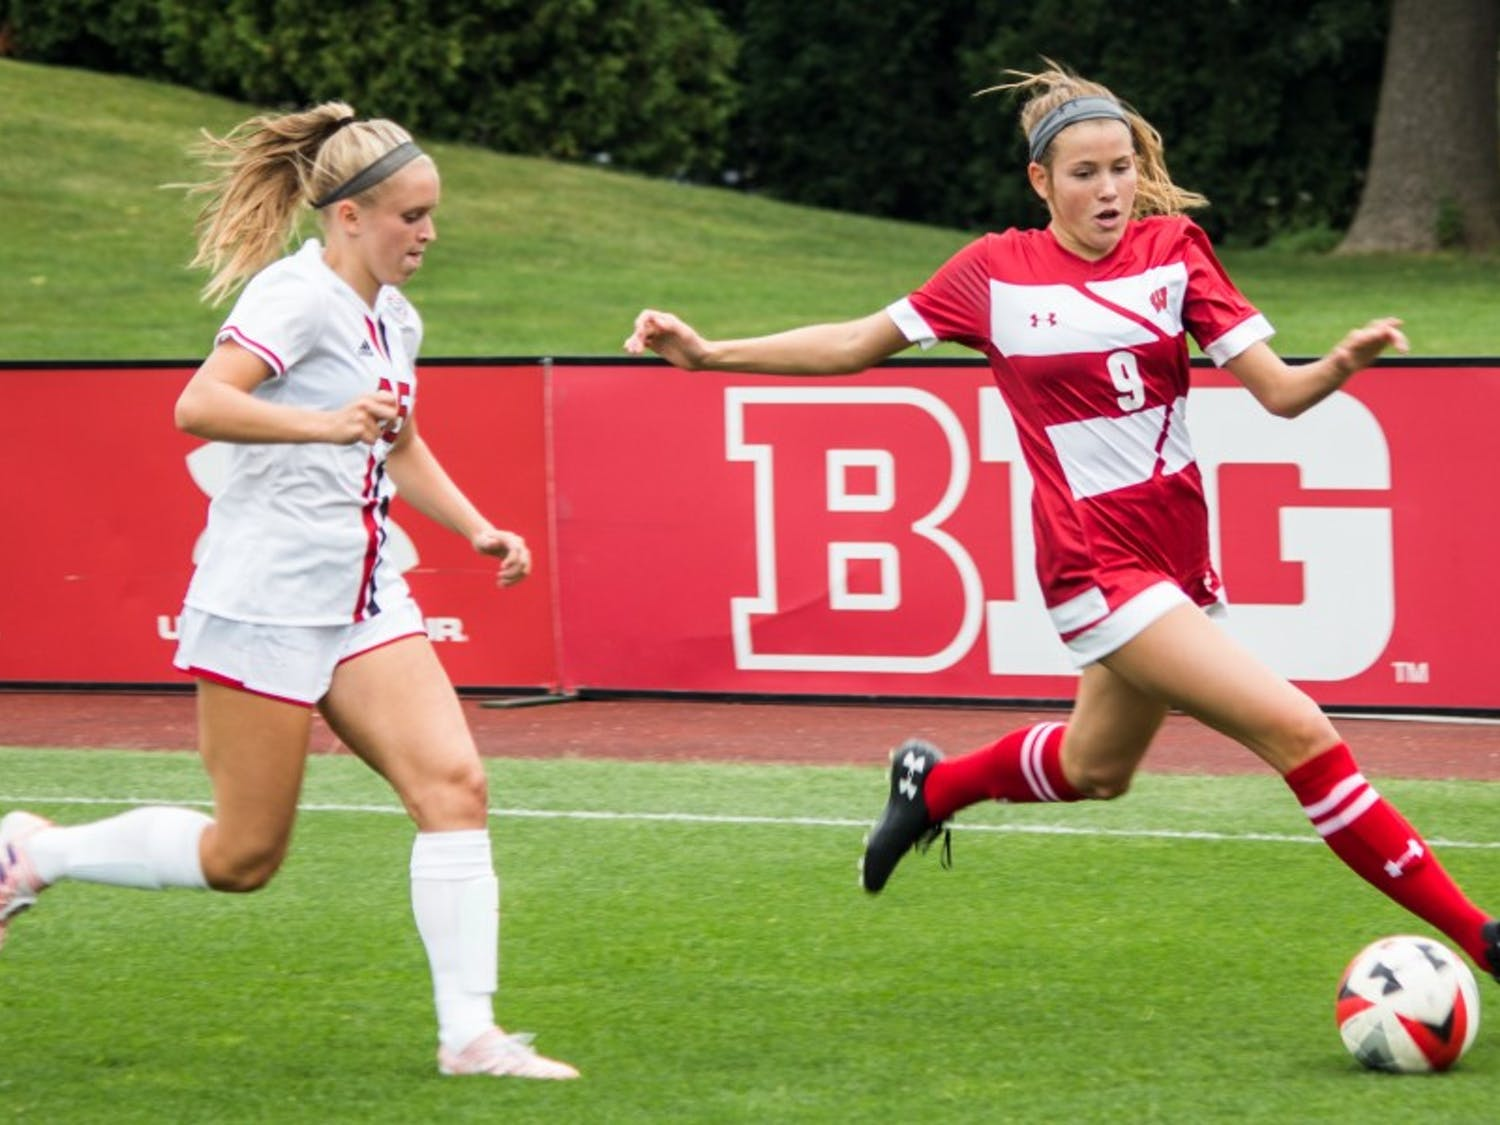 Sophomore forward Lauren Rice was able to strike a perfect shot two minutes into overtime to give the Badgers a win.